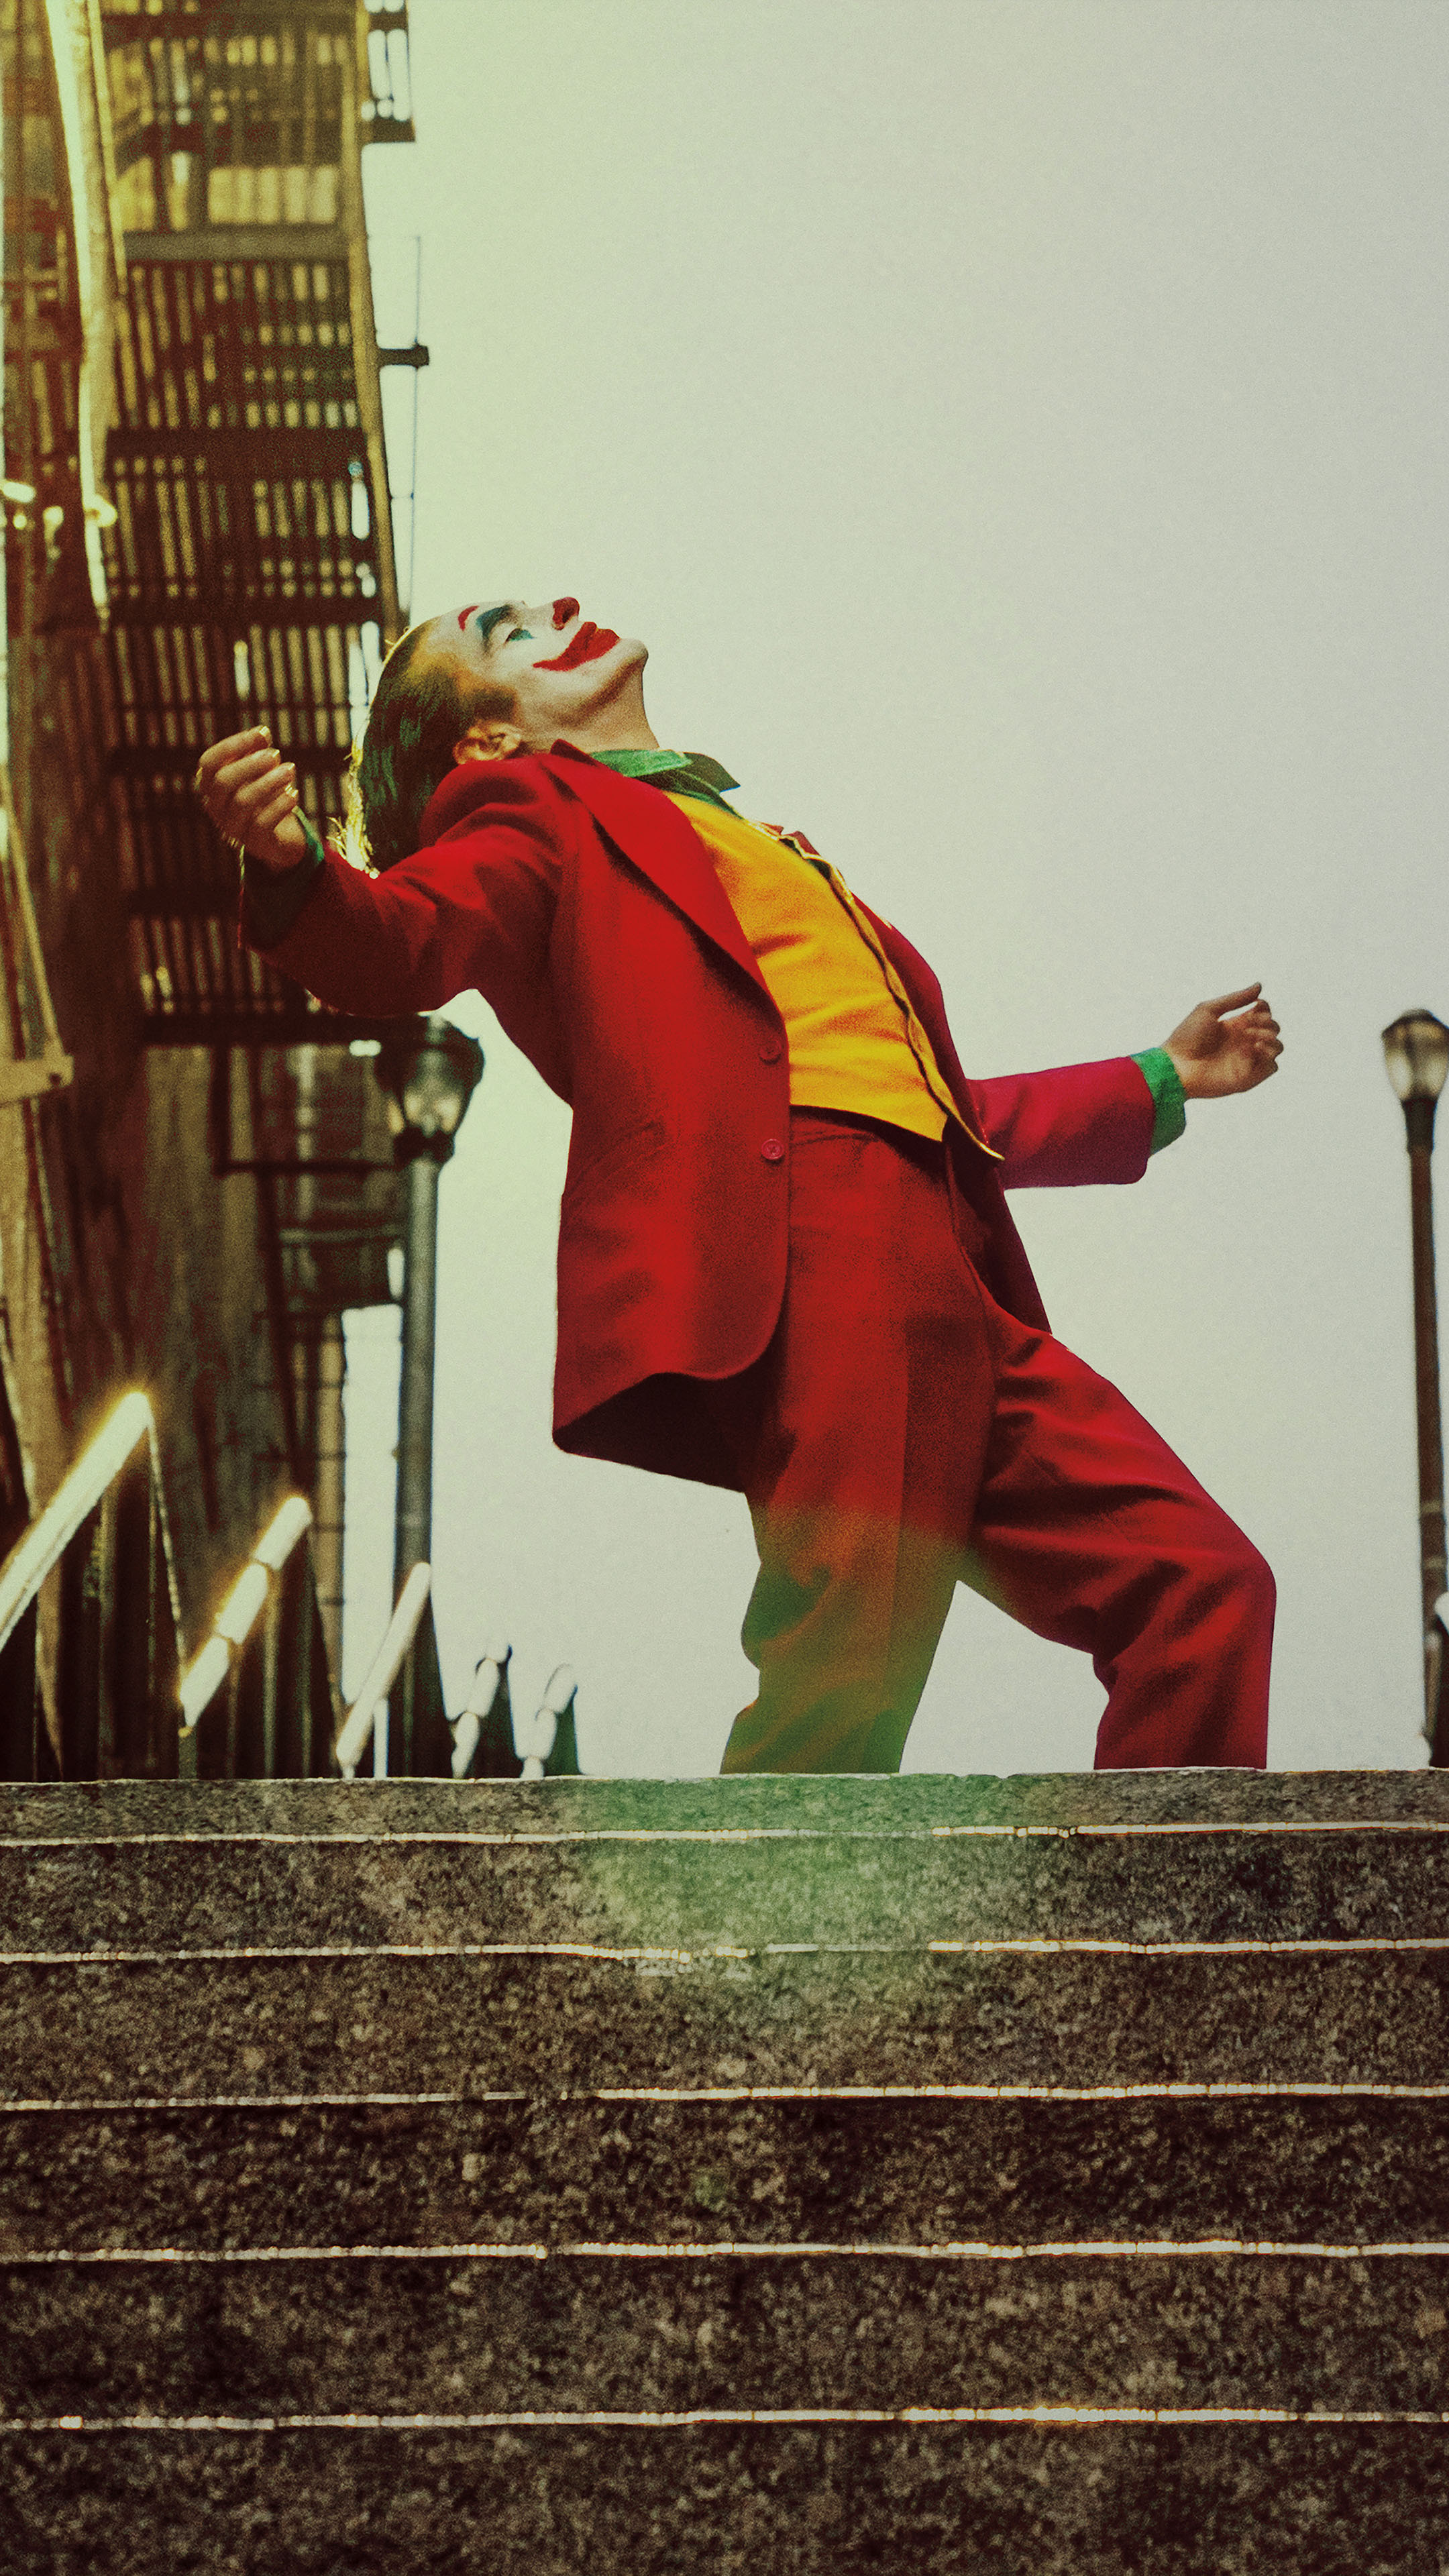 Joker 2019 Free 4k Ultra Hd Mobile Wallpaper